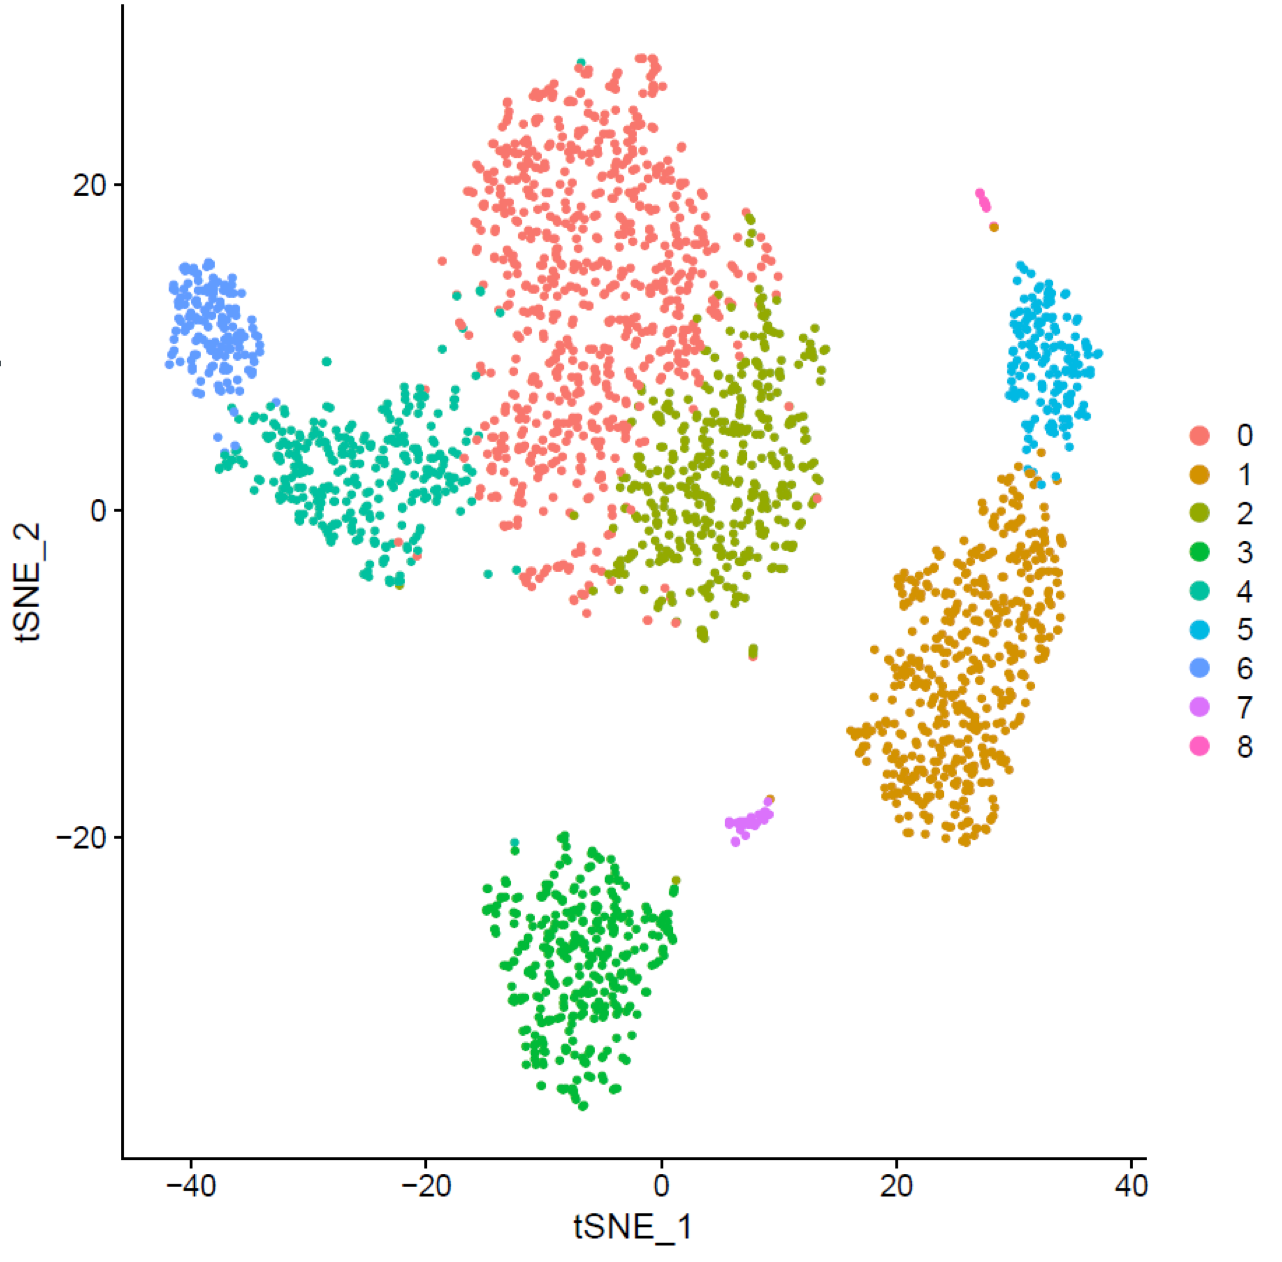 tSNE plot showing how cells (dots) are clustered